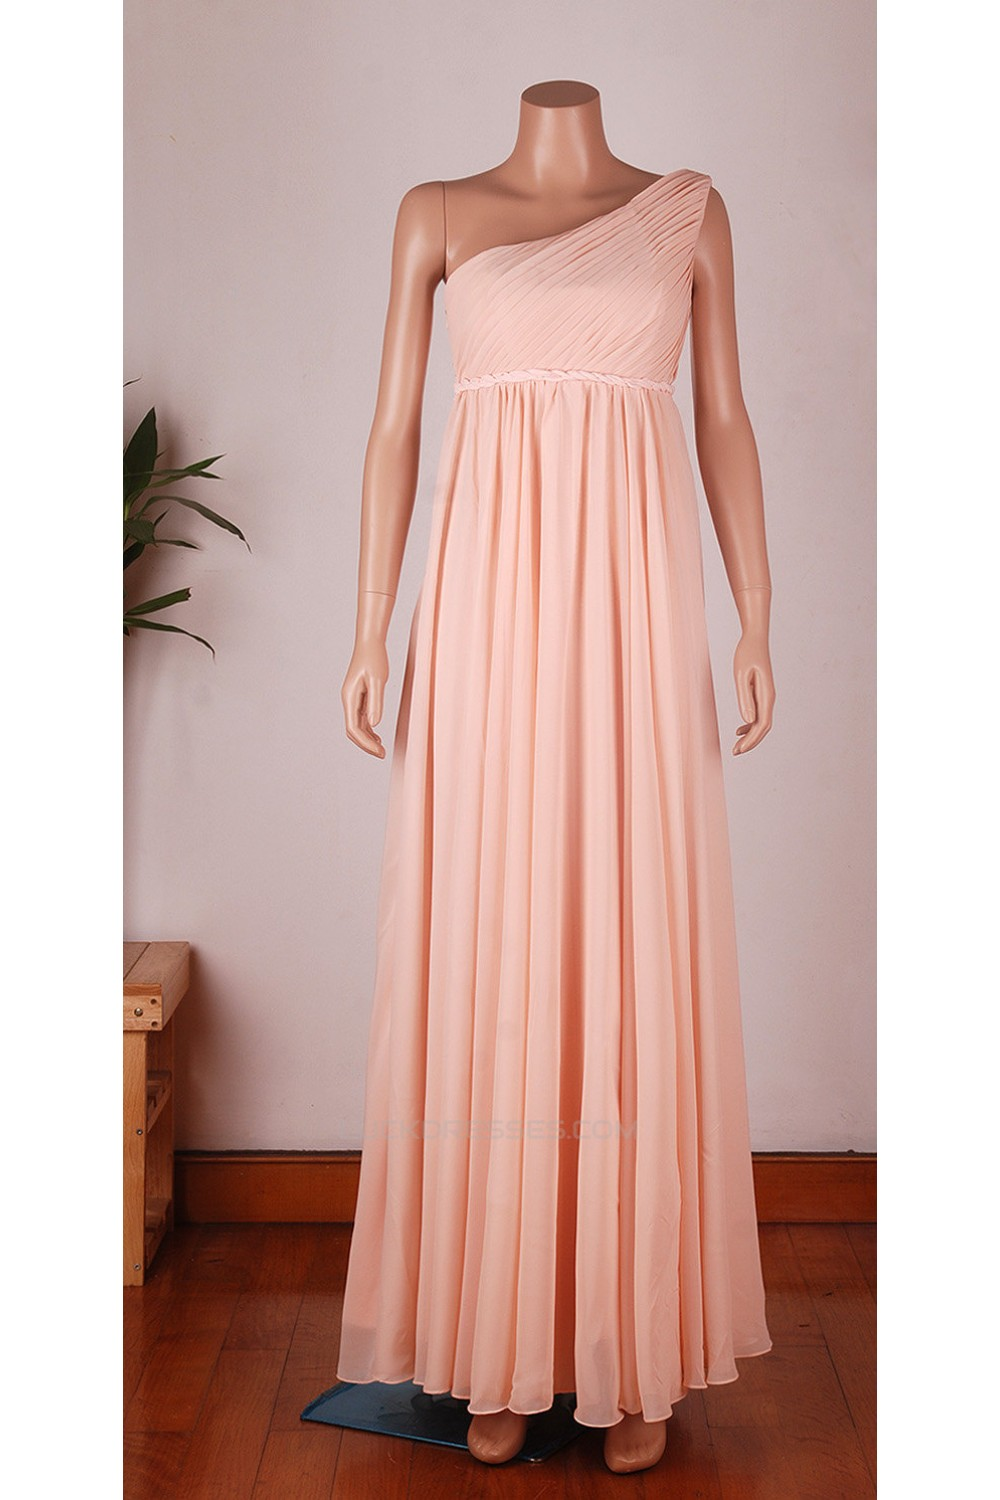 Empire One-Shoulder Long Chiffon Bridesmaid Dresses/Wedding Party ...